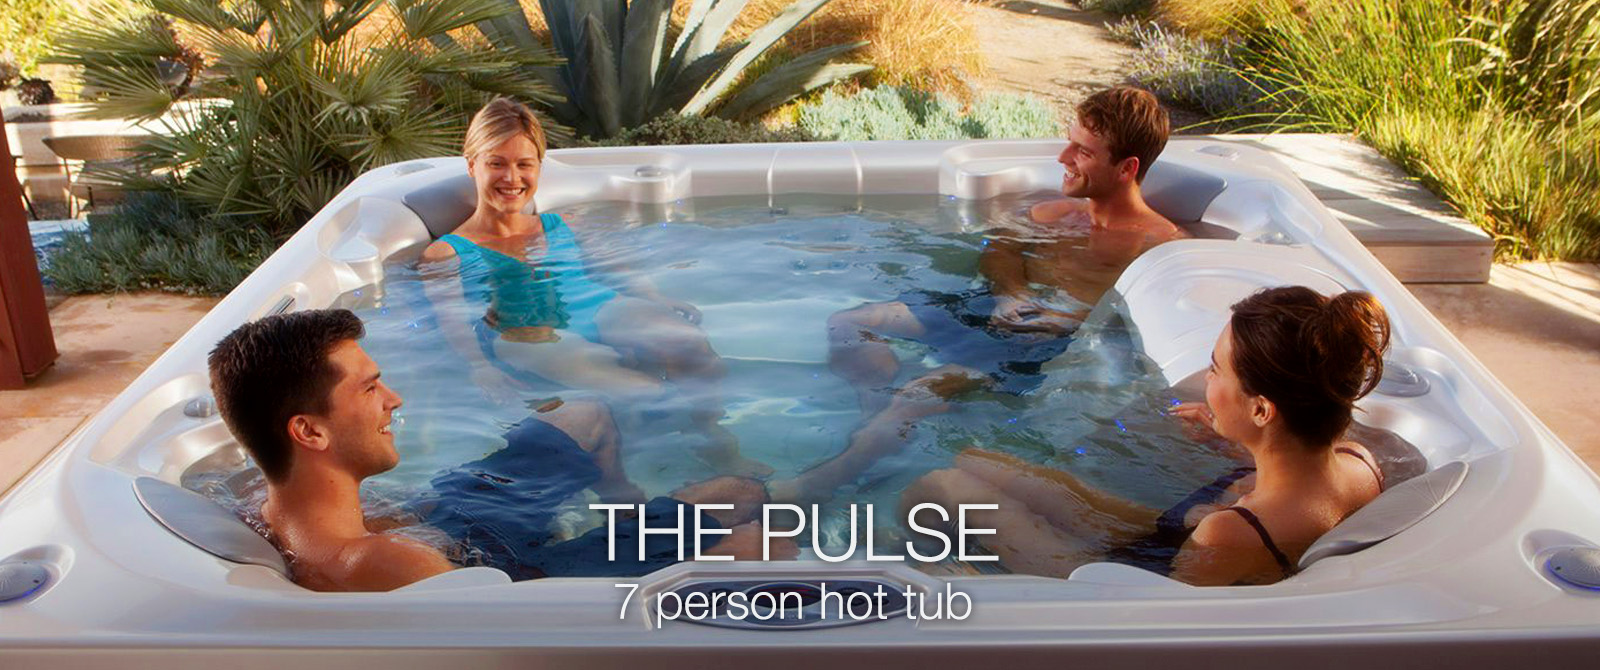 the pulse hotspring spa lanzarote